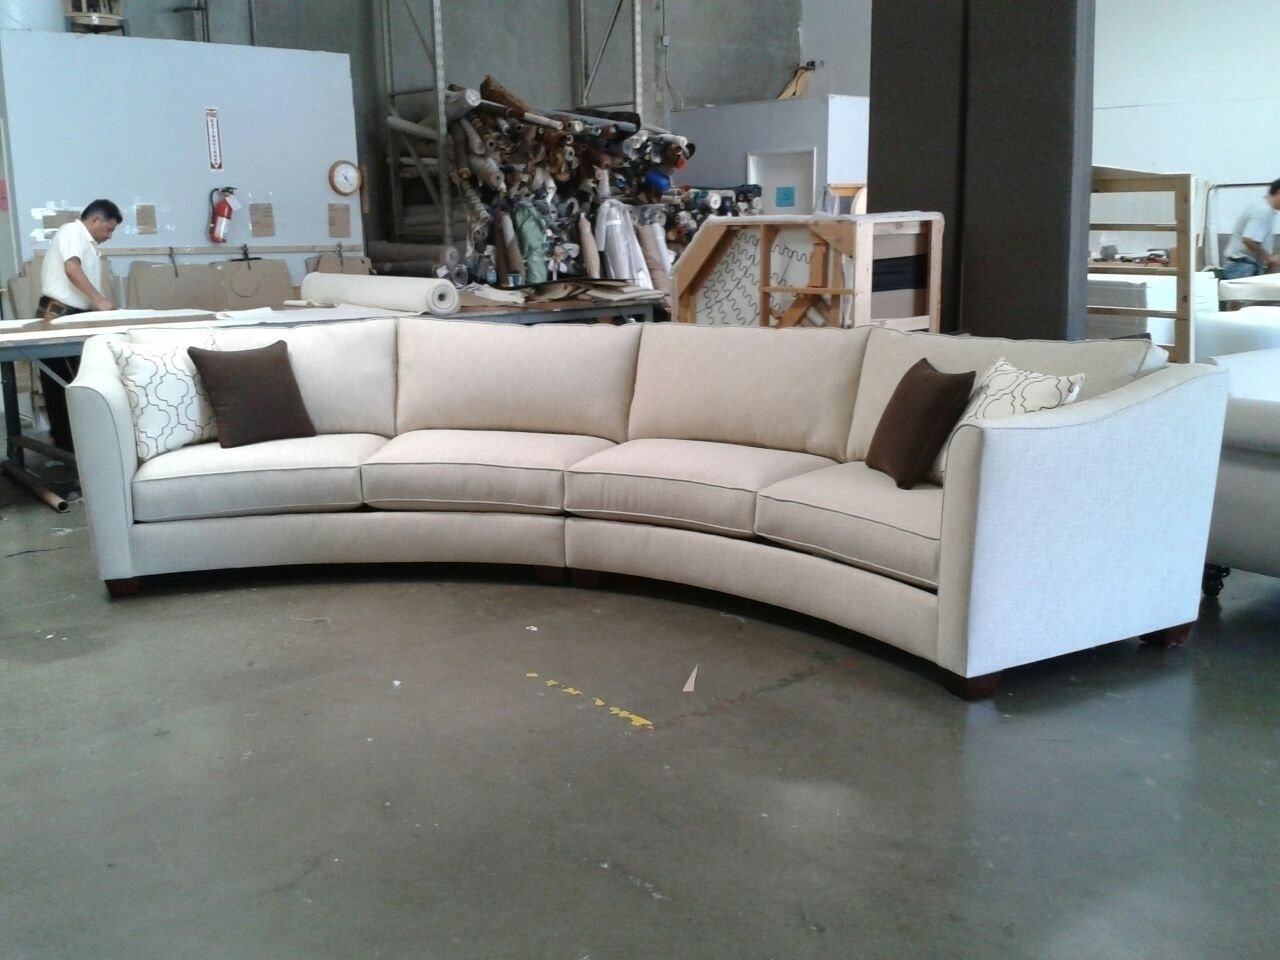 Curved Sectional Sofa Design — Cabinets, Beds, Sofas And Intended For Rounded Sofas (Image 2 of 10)